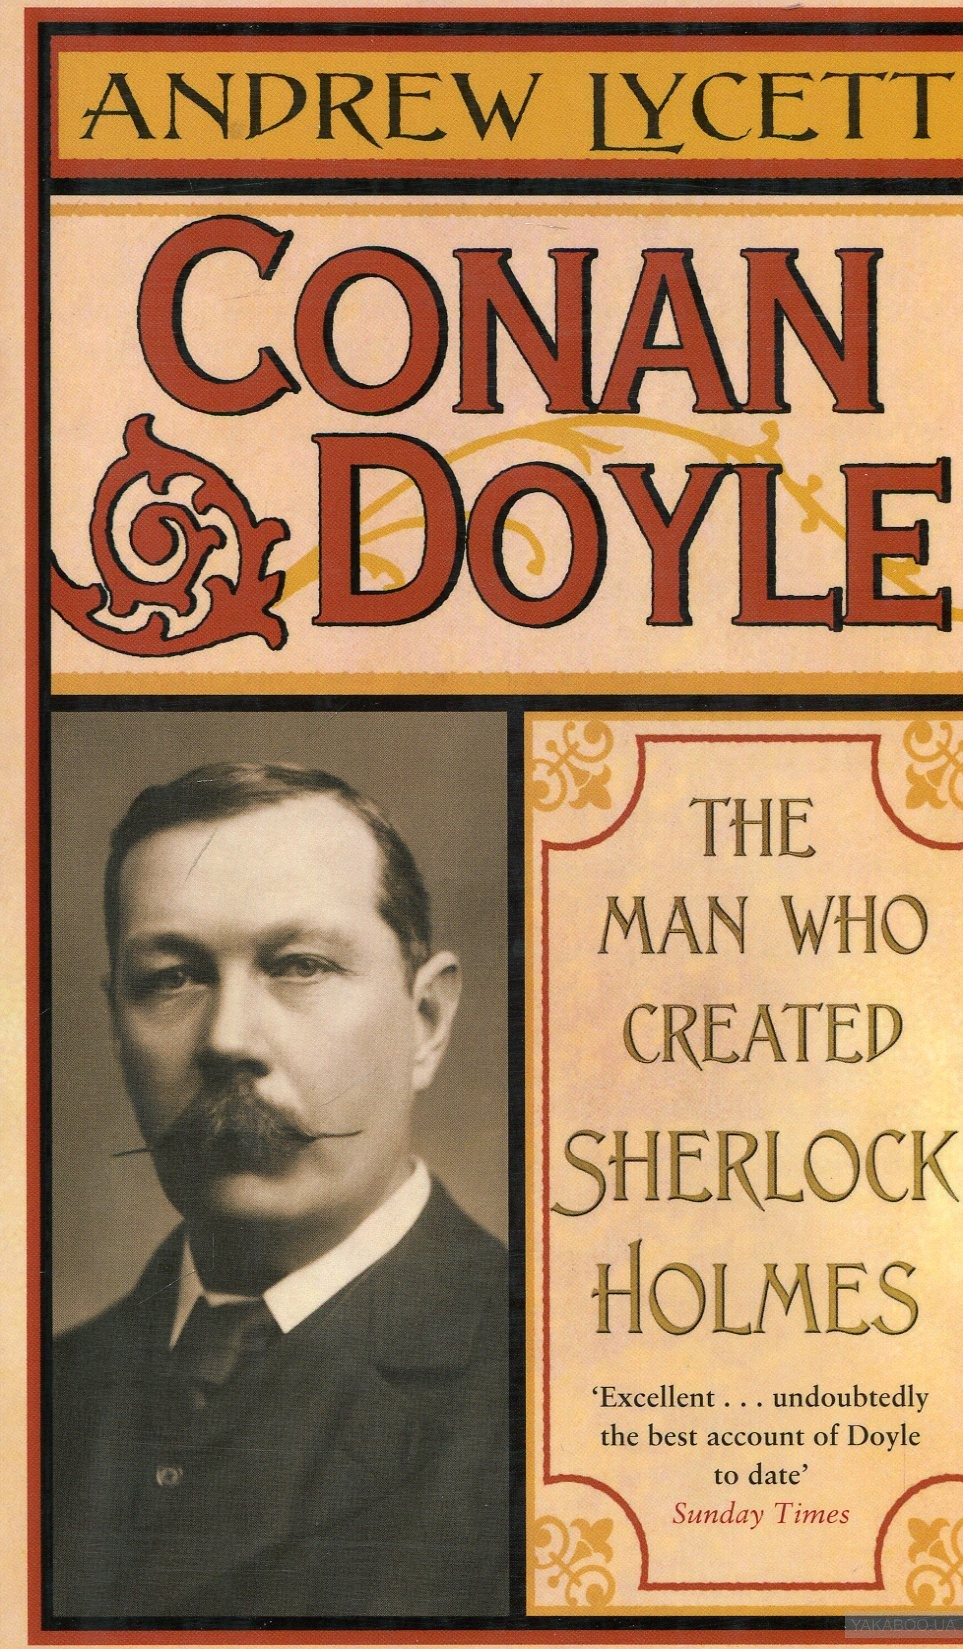 Conan doyle: the man who created